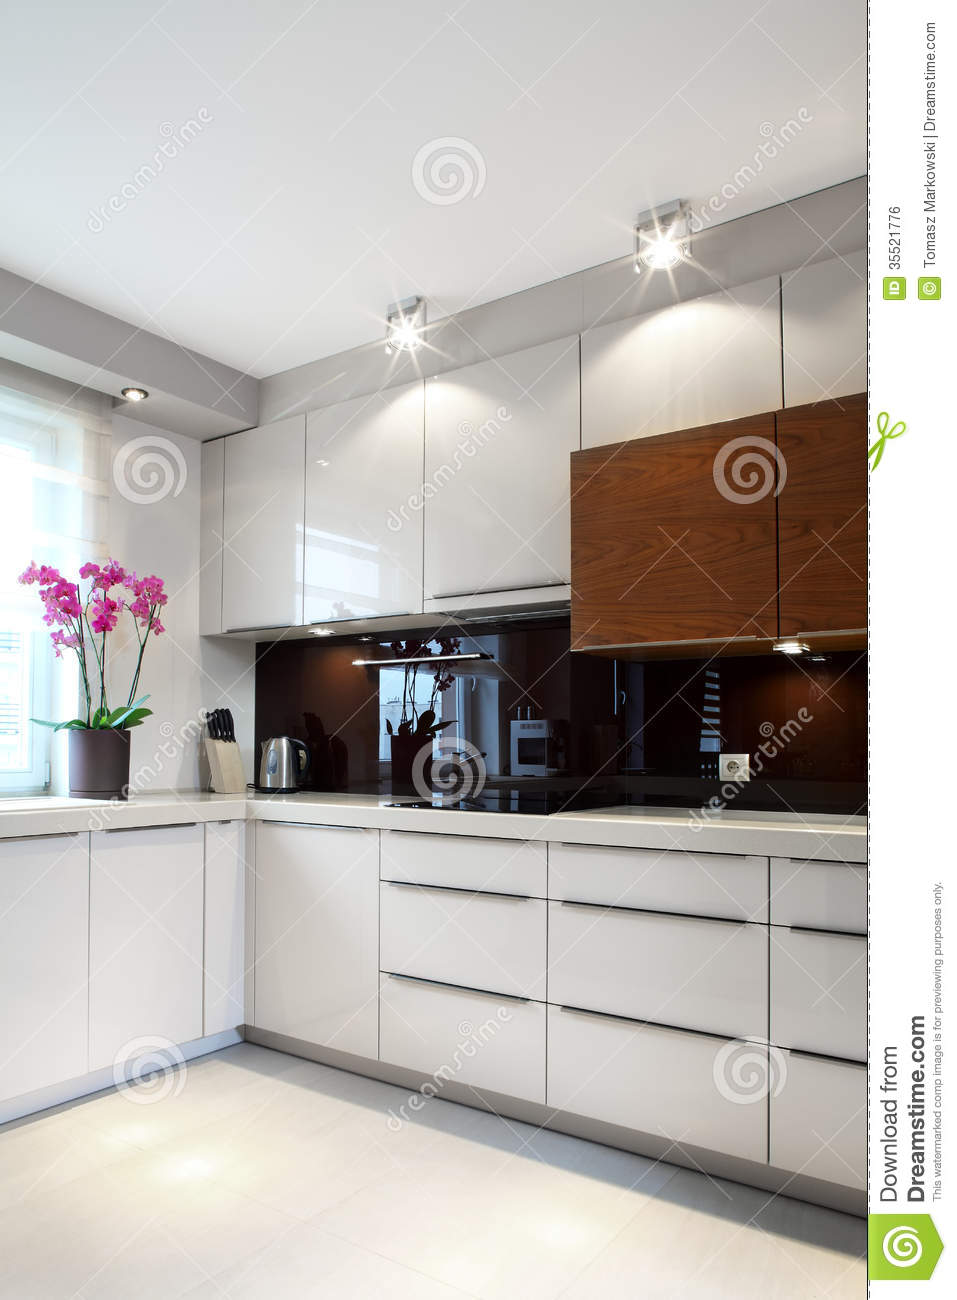 luxurious modern kitchen royalty free stock image image